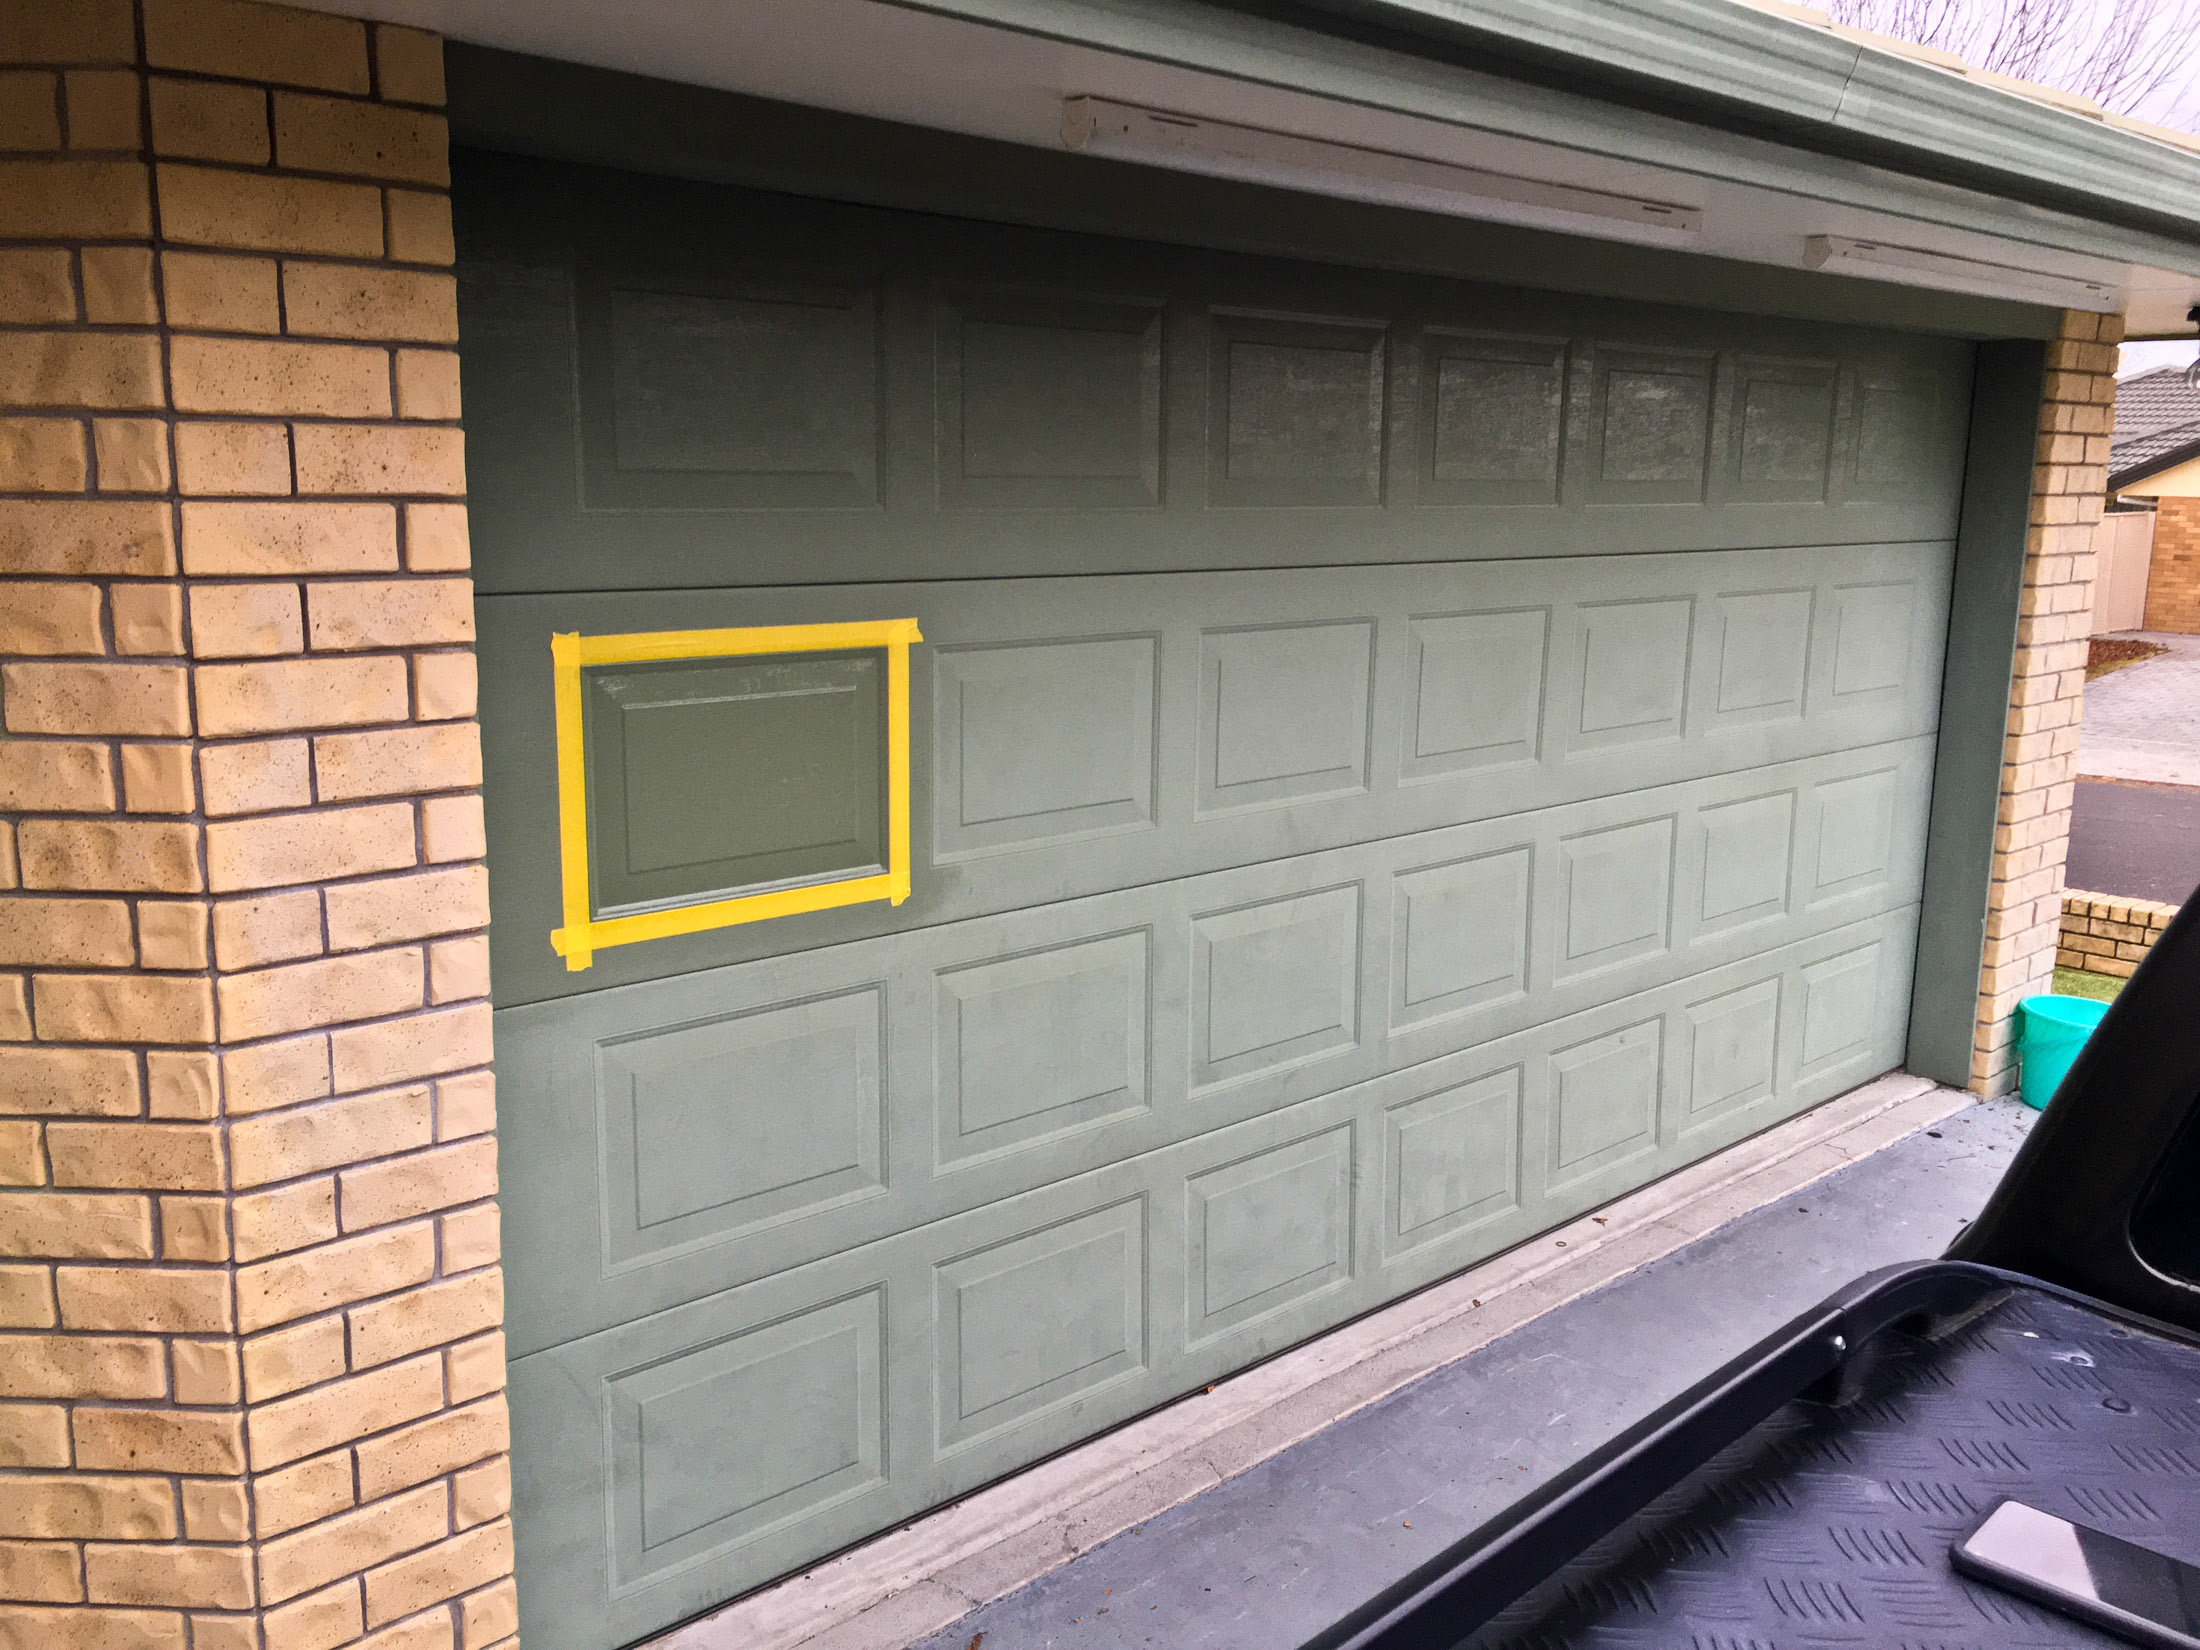 Wider view of garage door section after coating applied